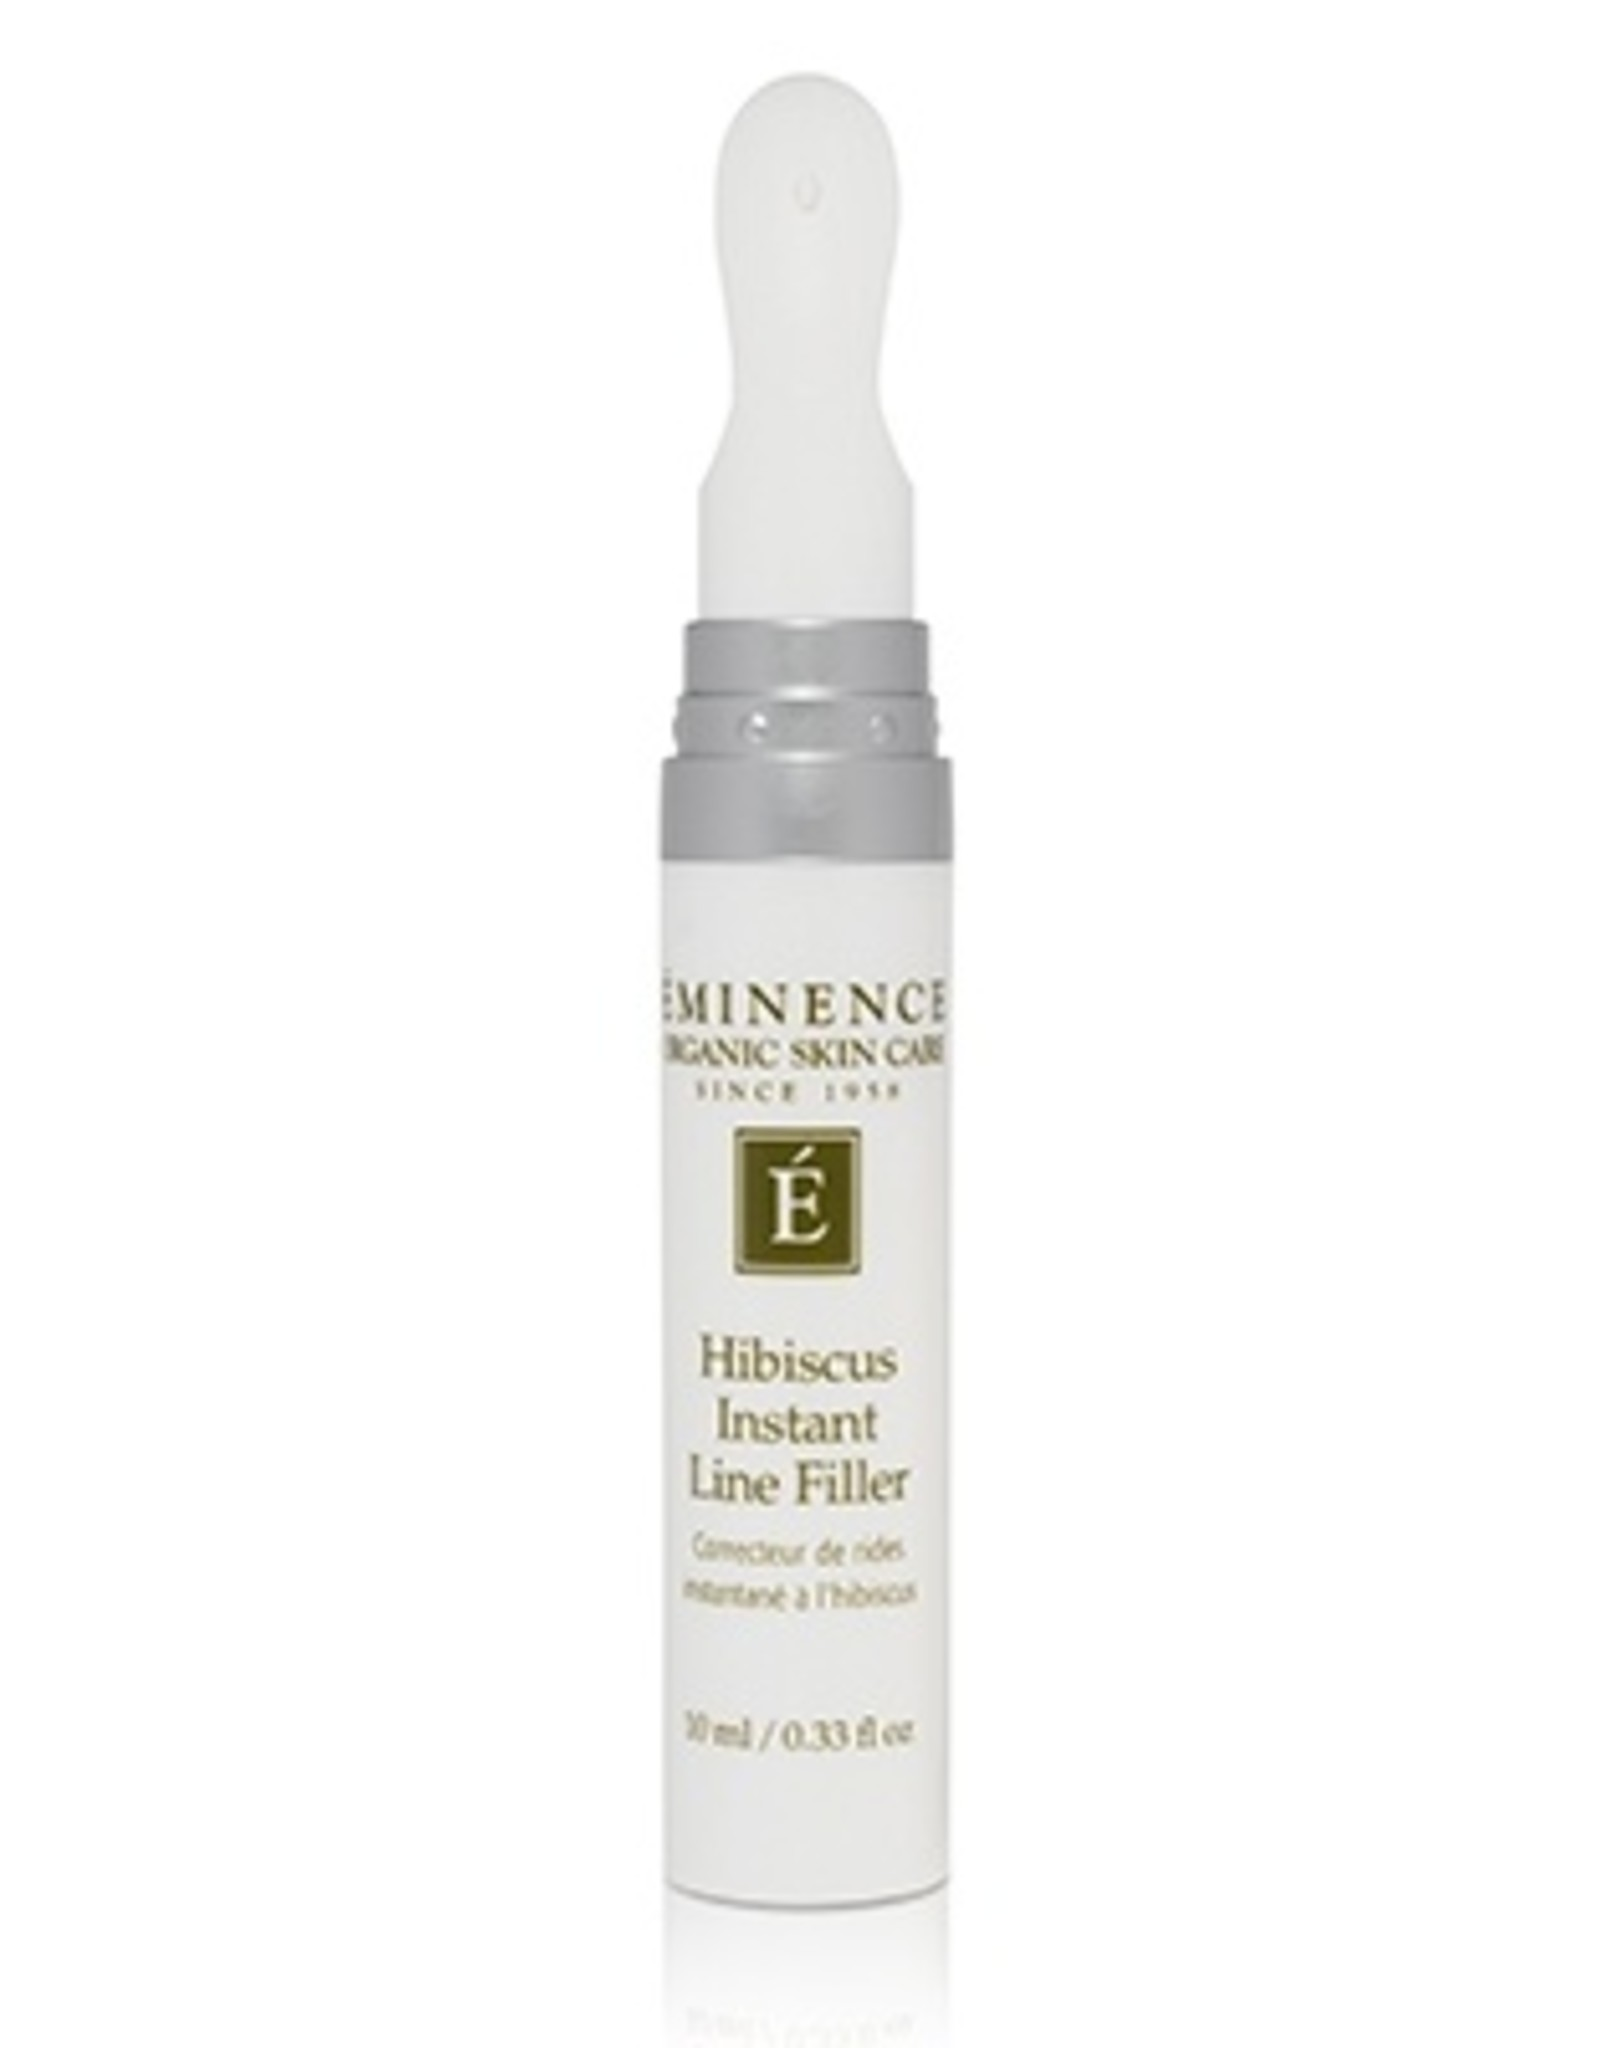 Eminence Organic Skin Care Hibiscus Instant Line Filler